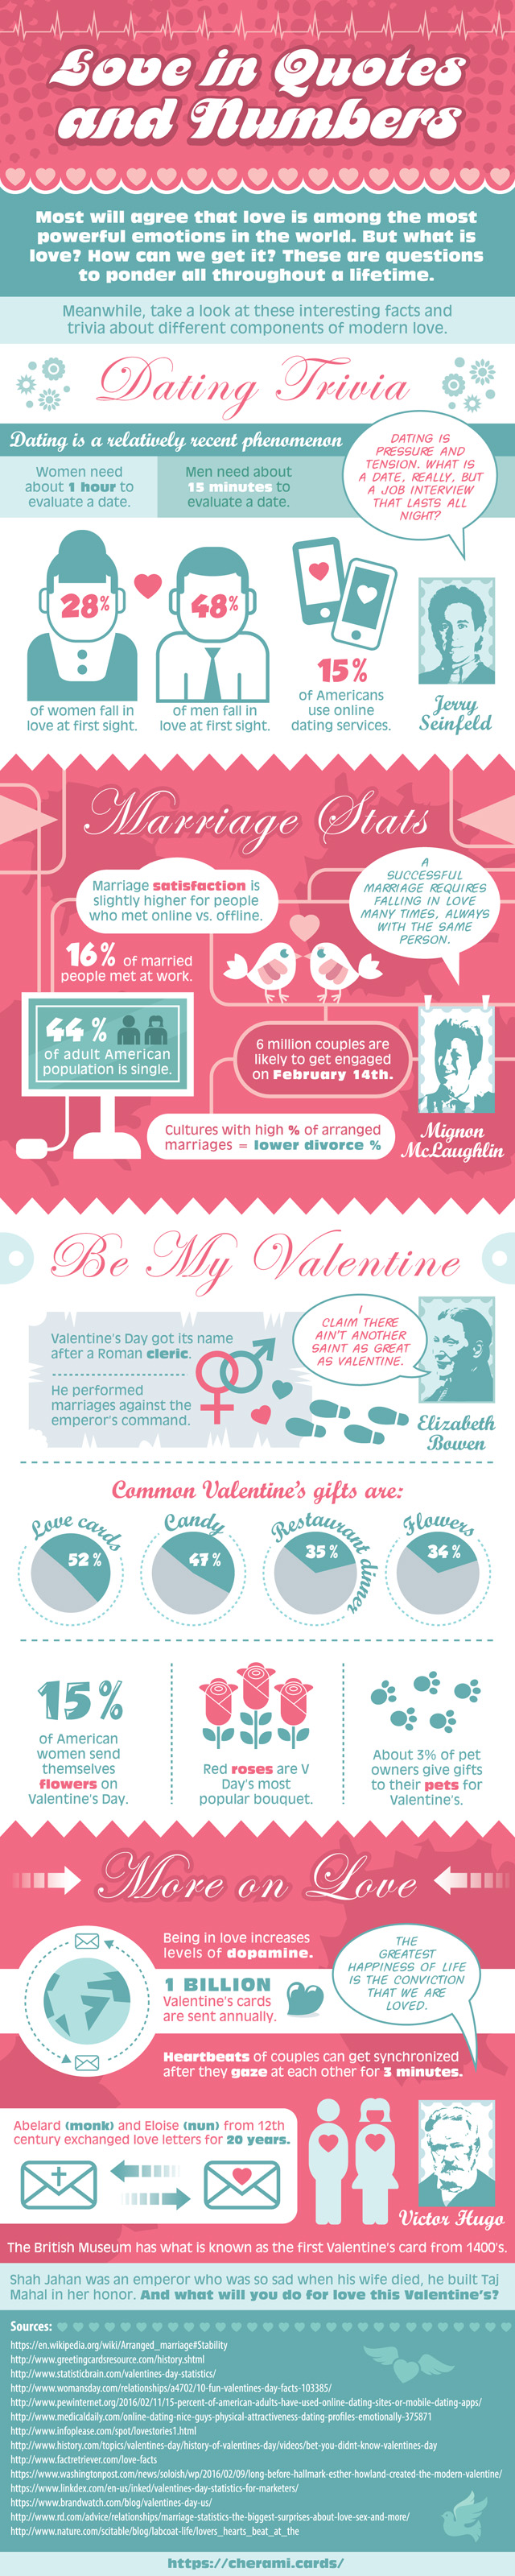 love-in-quotes-and-numbers-infographic-plaza